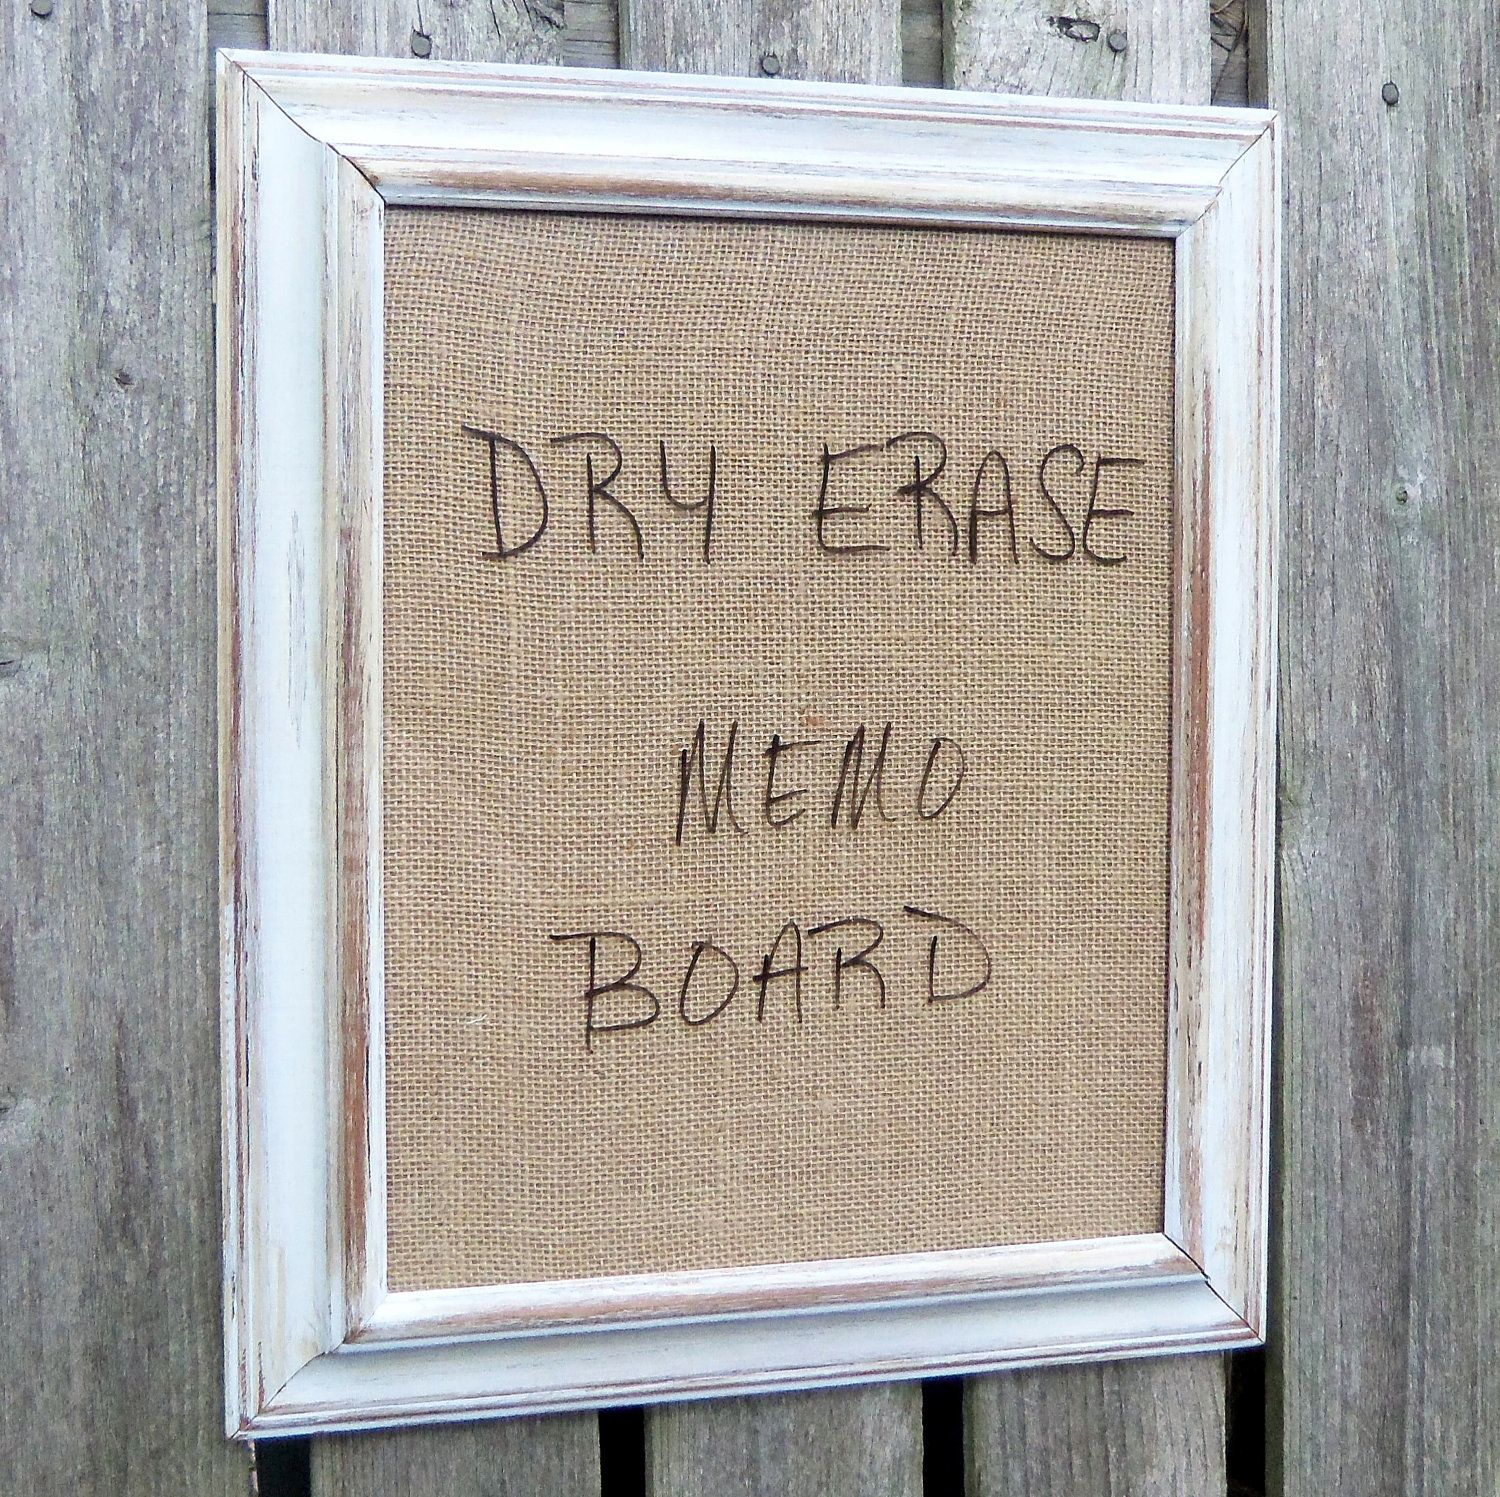 For A Photo Both Message Board Framed Dry Erase Board